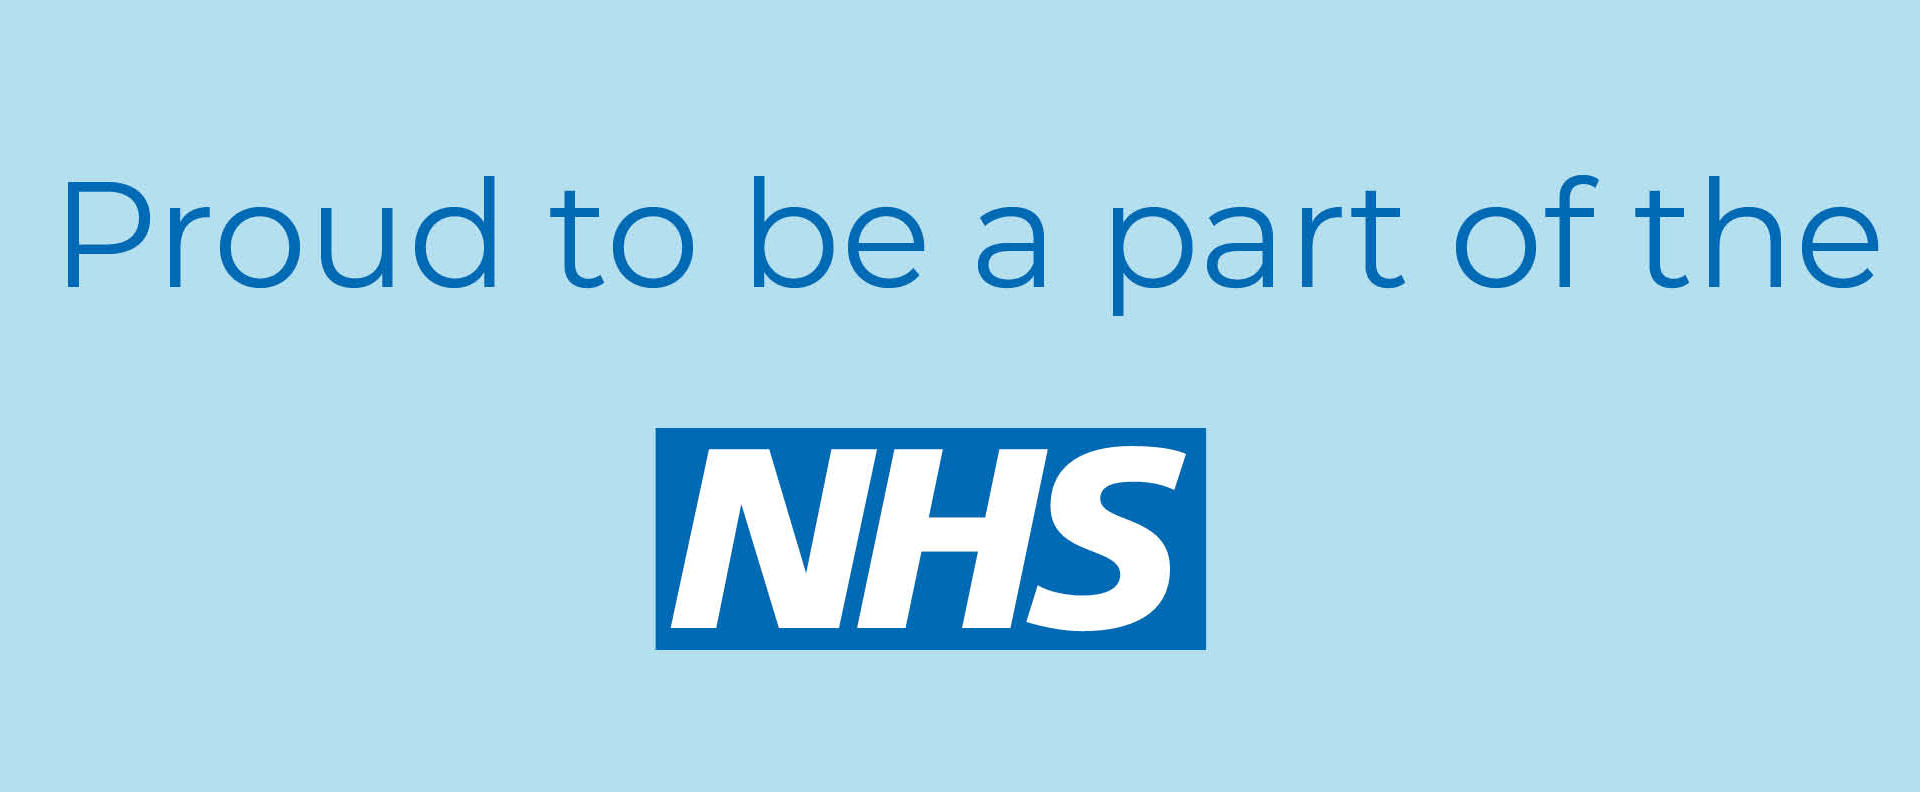 Optika NHS web banner.jpg